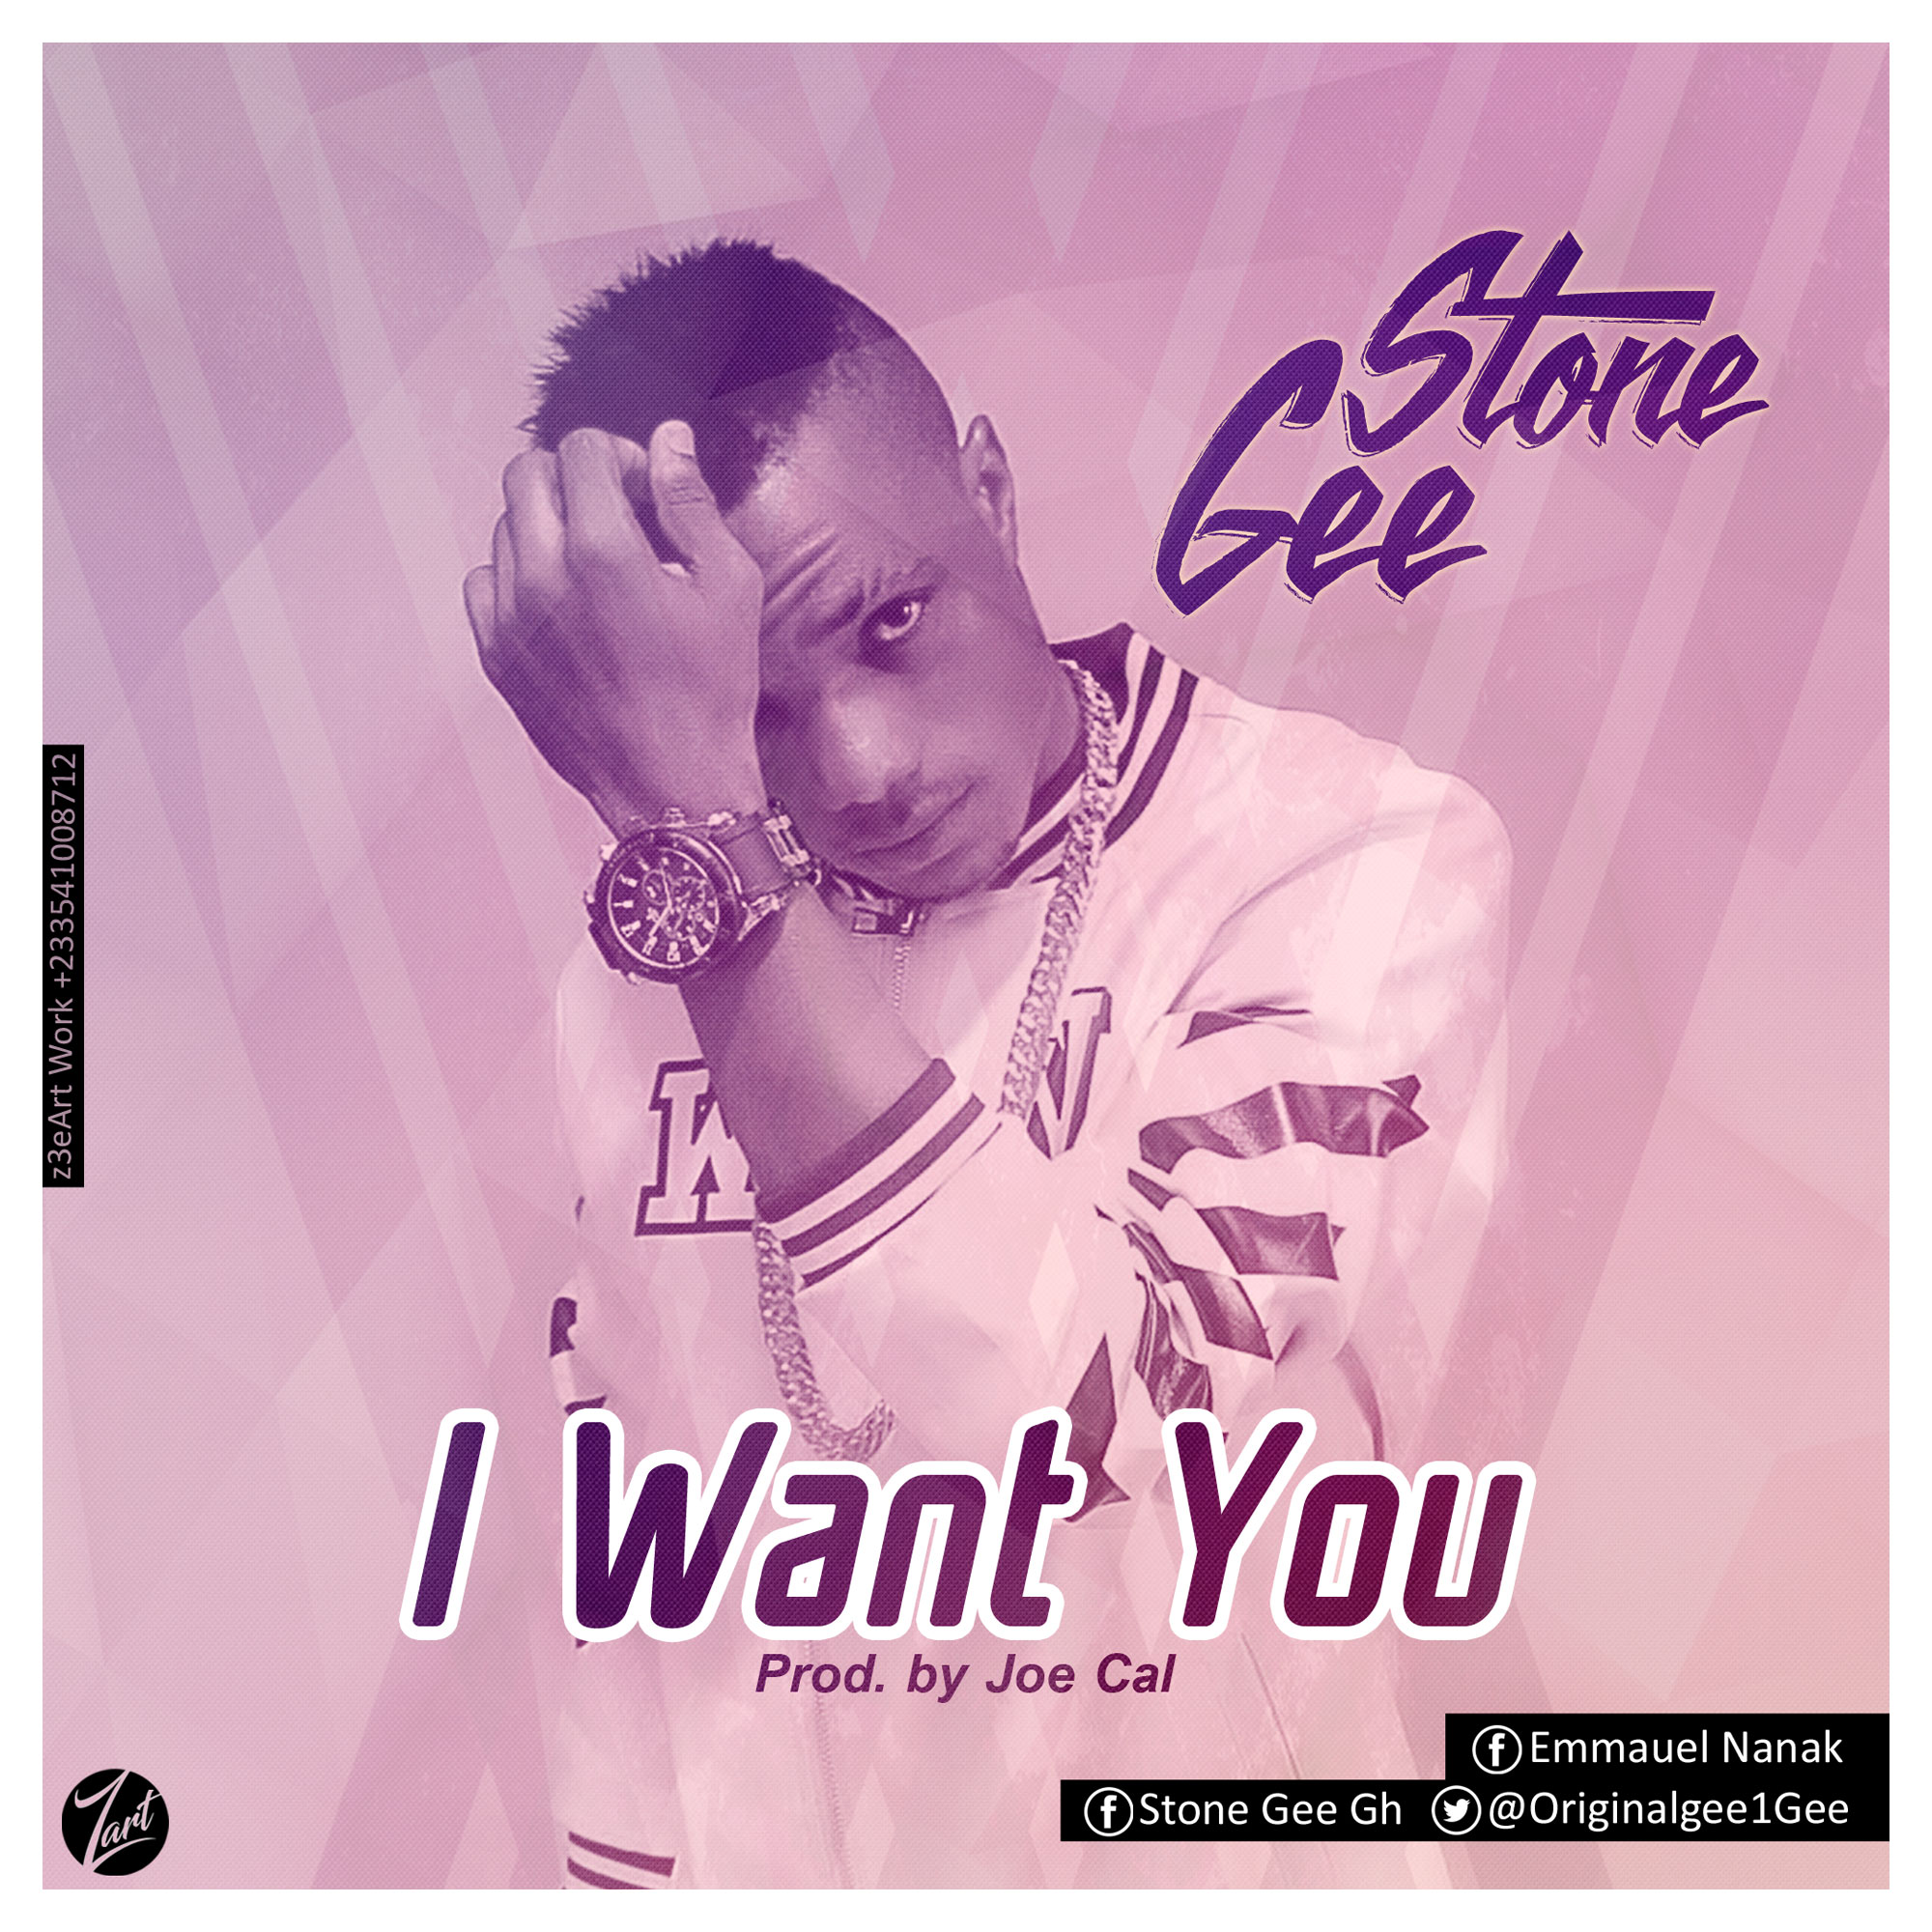 Stone Gee - I want you (Produced by JOECal)